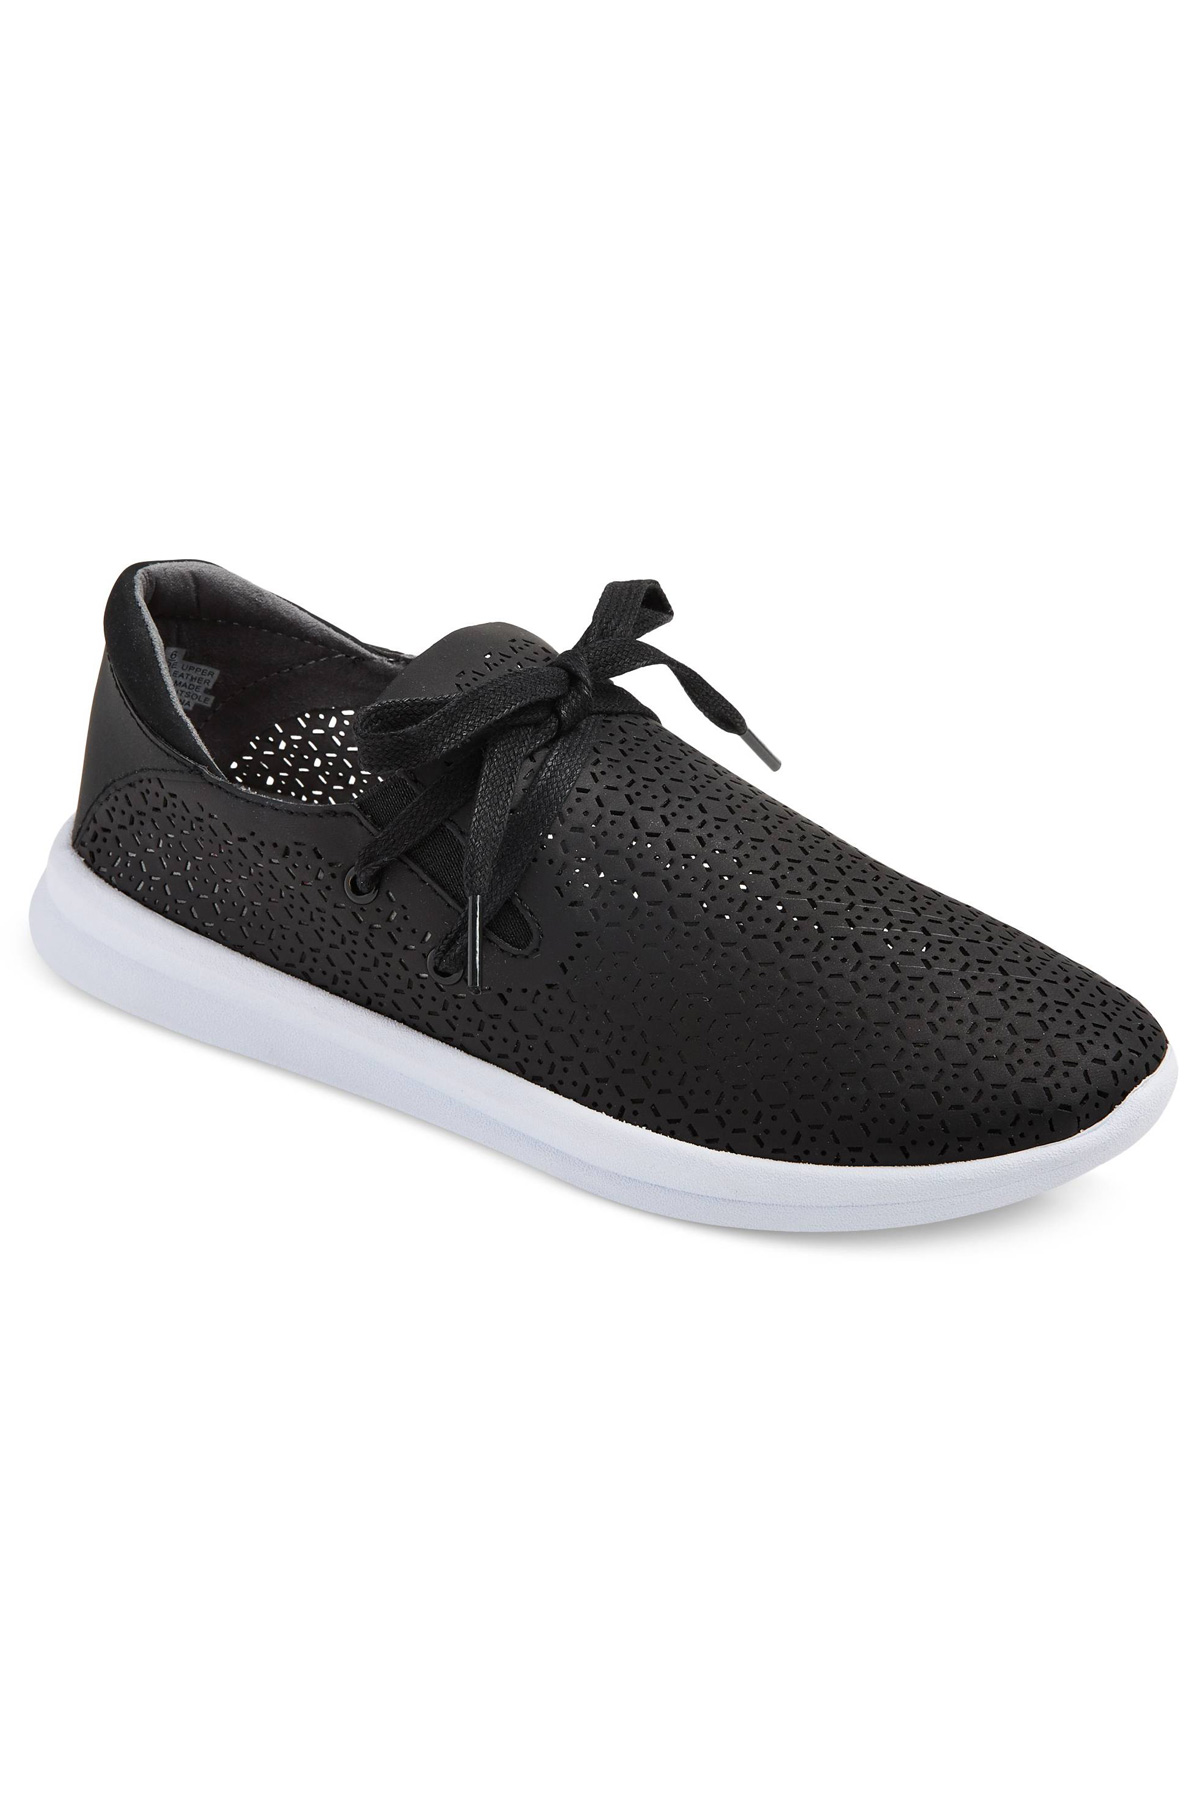 Raelee Perforated Sneakers